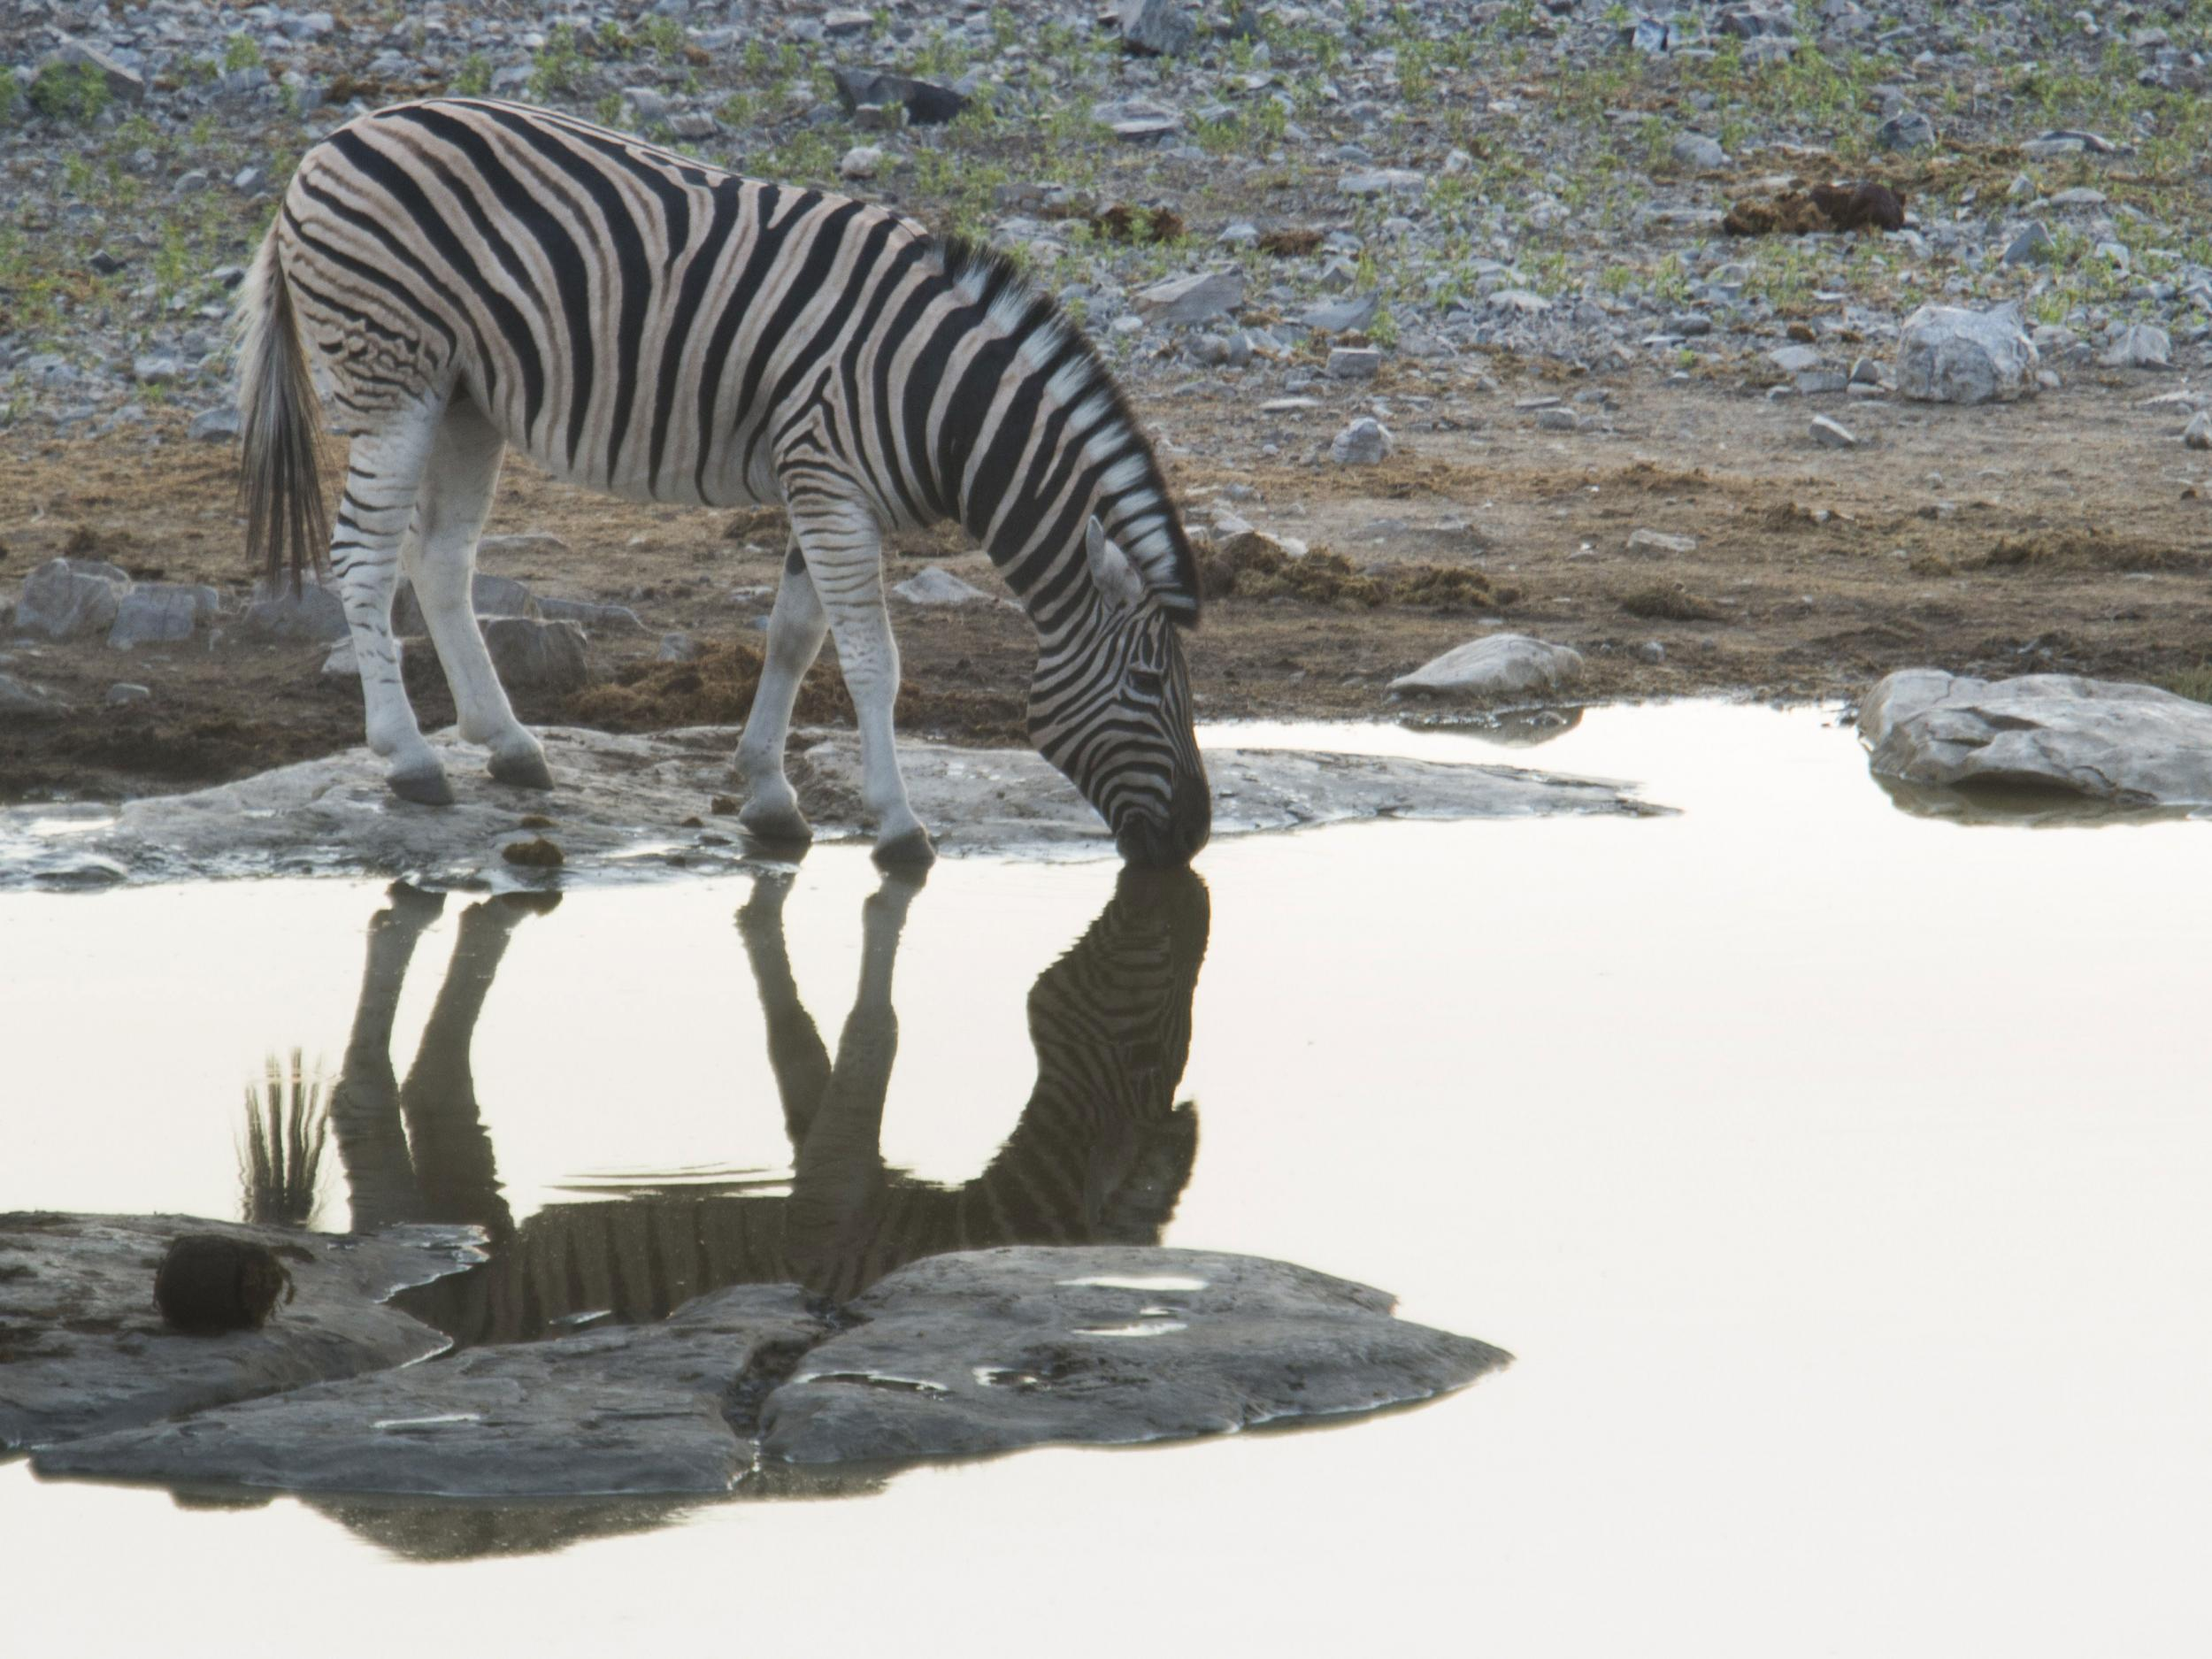 zebra stripes not for camouflage scientists confirm the independent